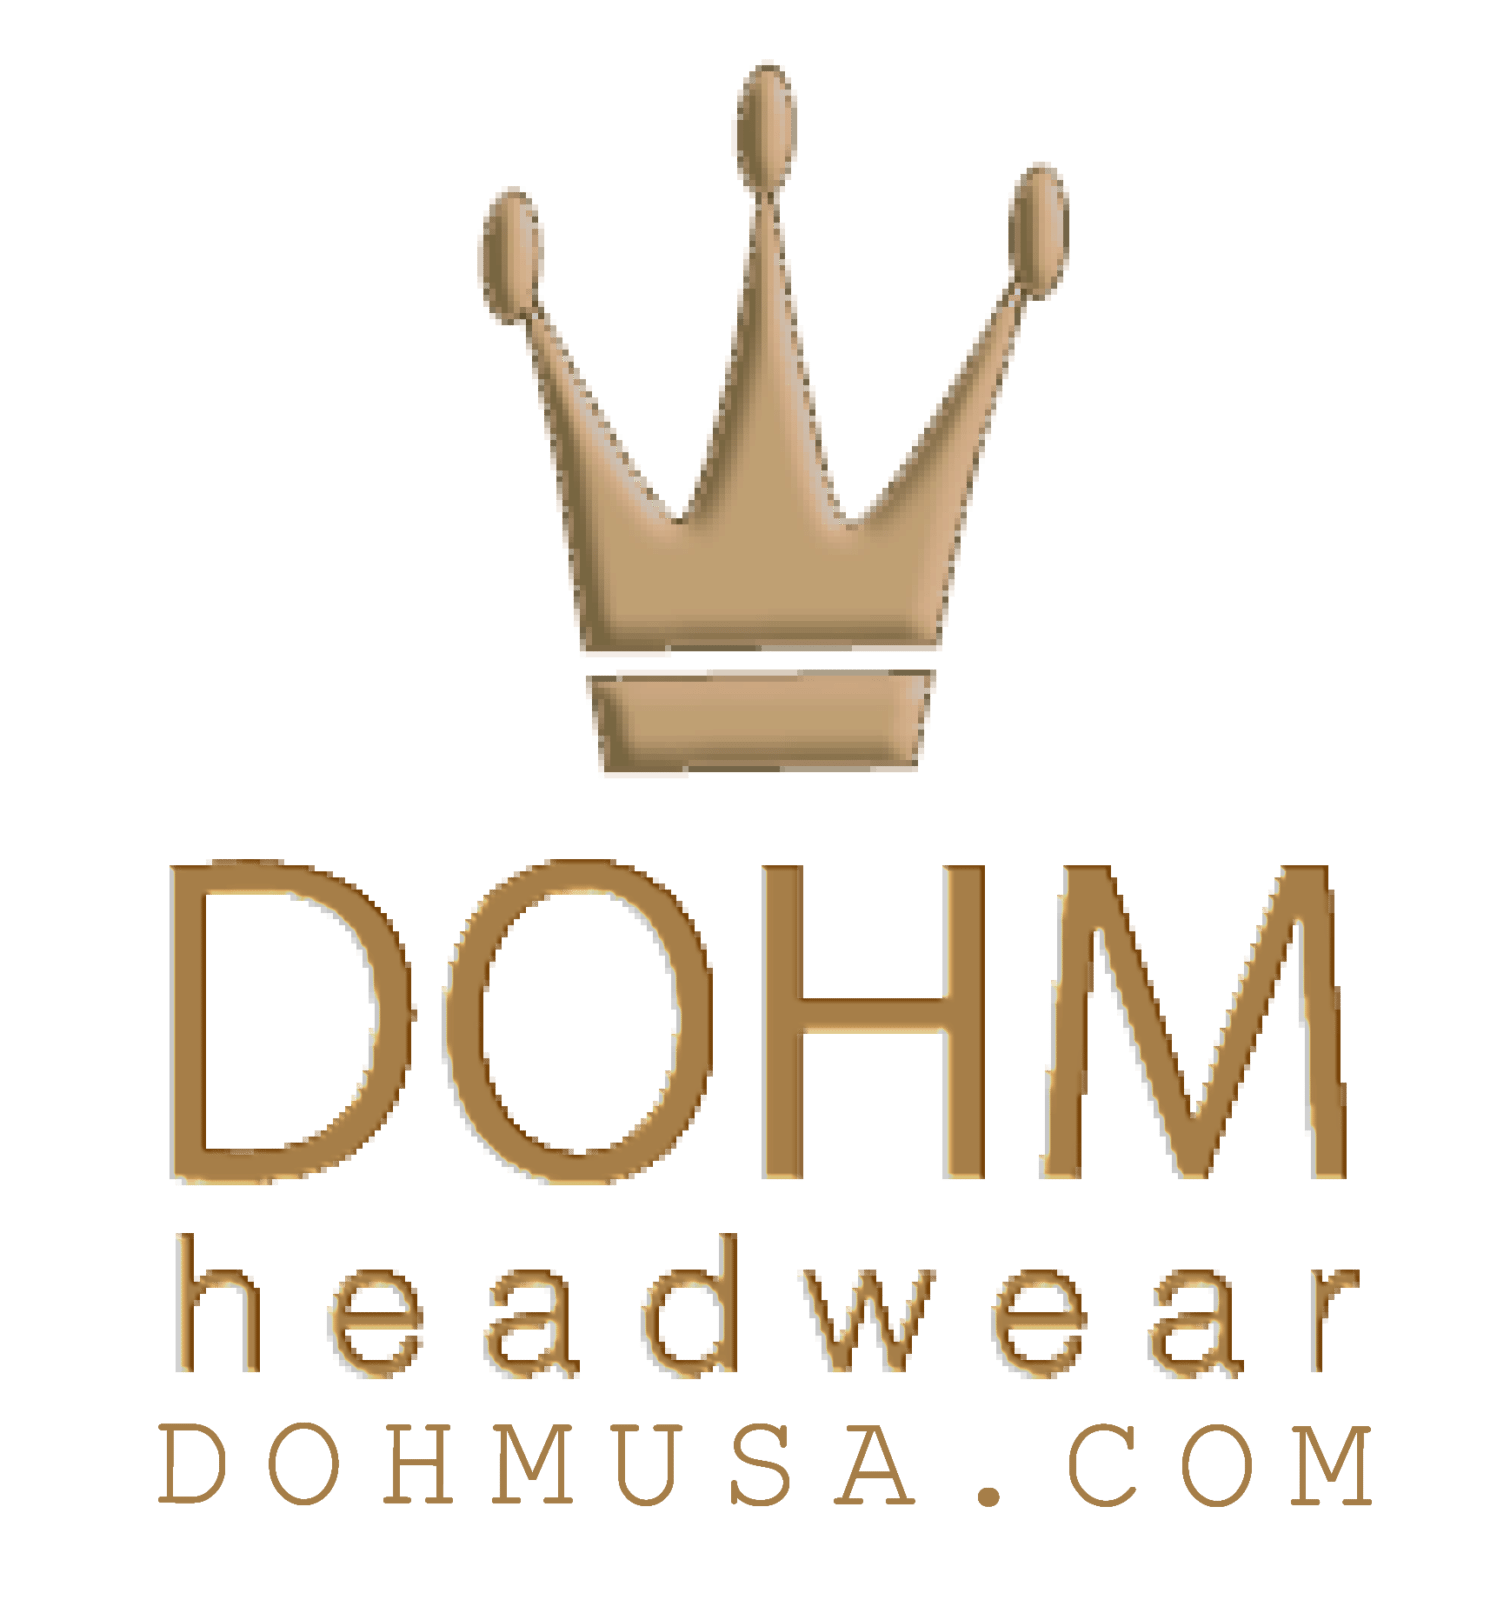 Dohm Usa, Hats made in USA